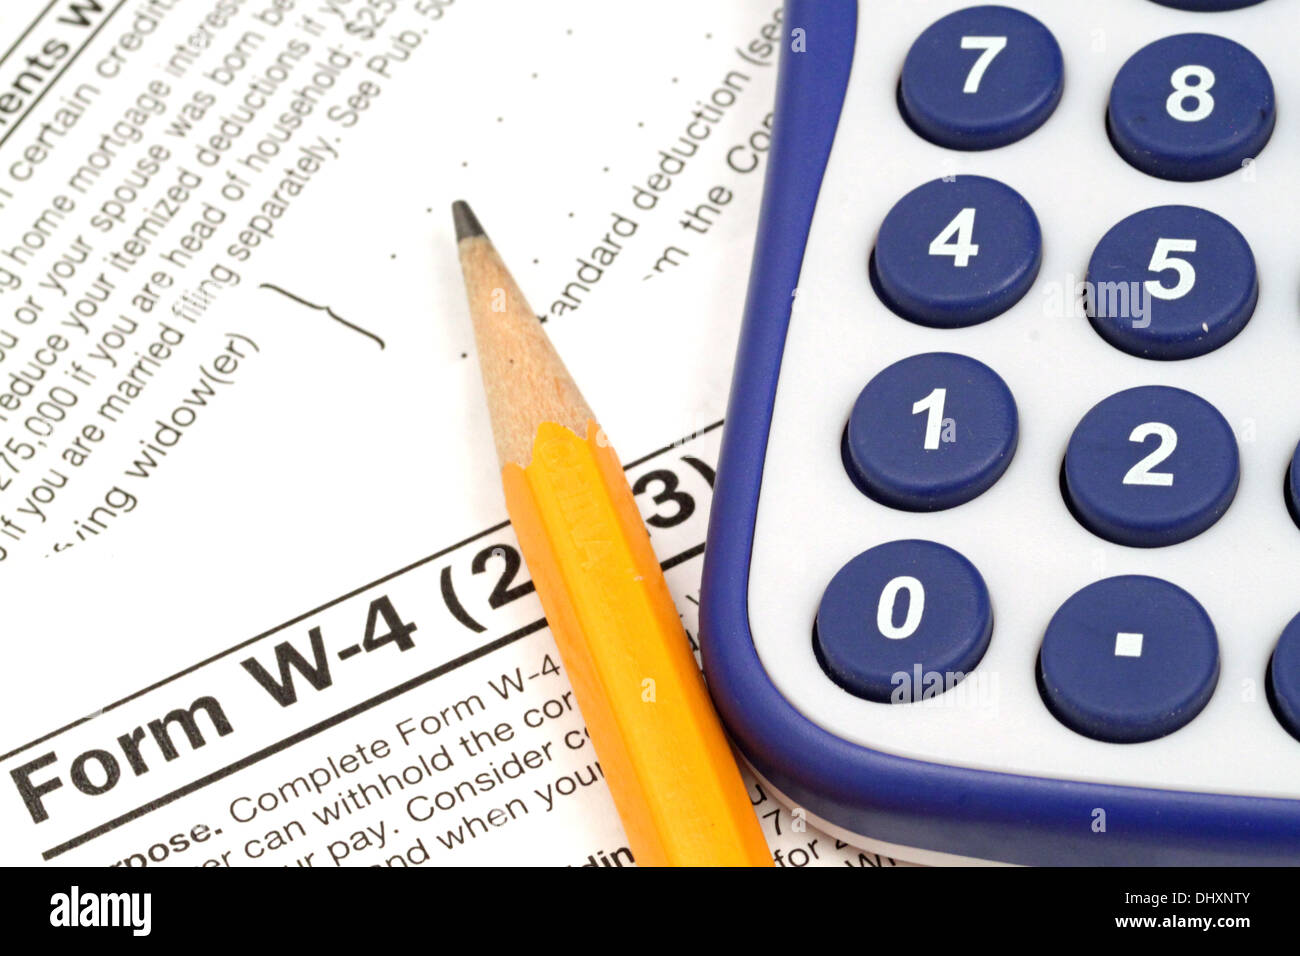 Irs Form W 4 Close Up With Tax Preparation Tools Stock Photo